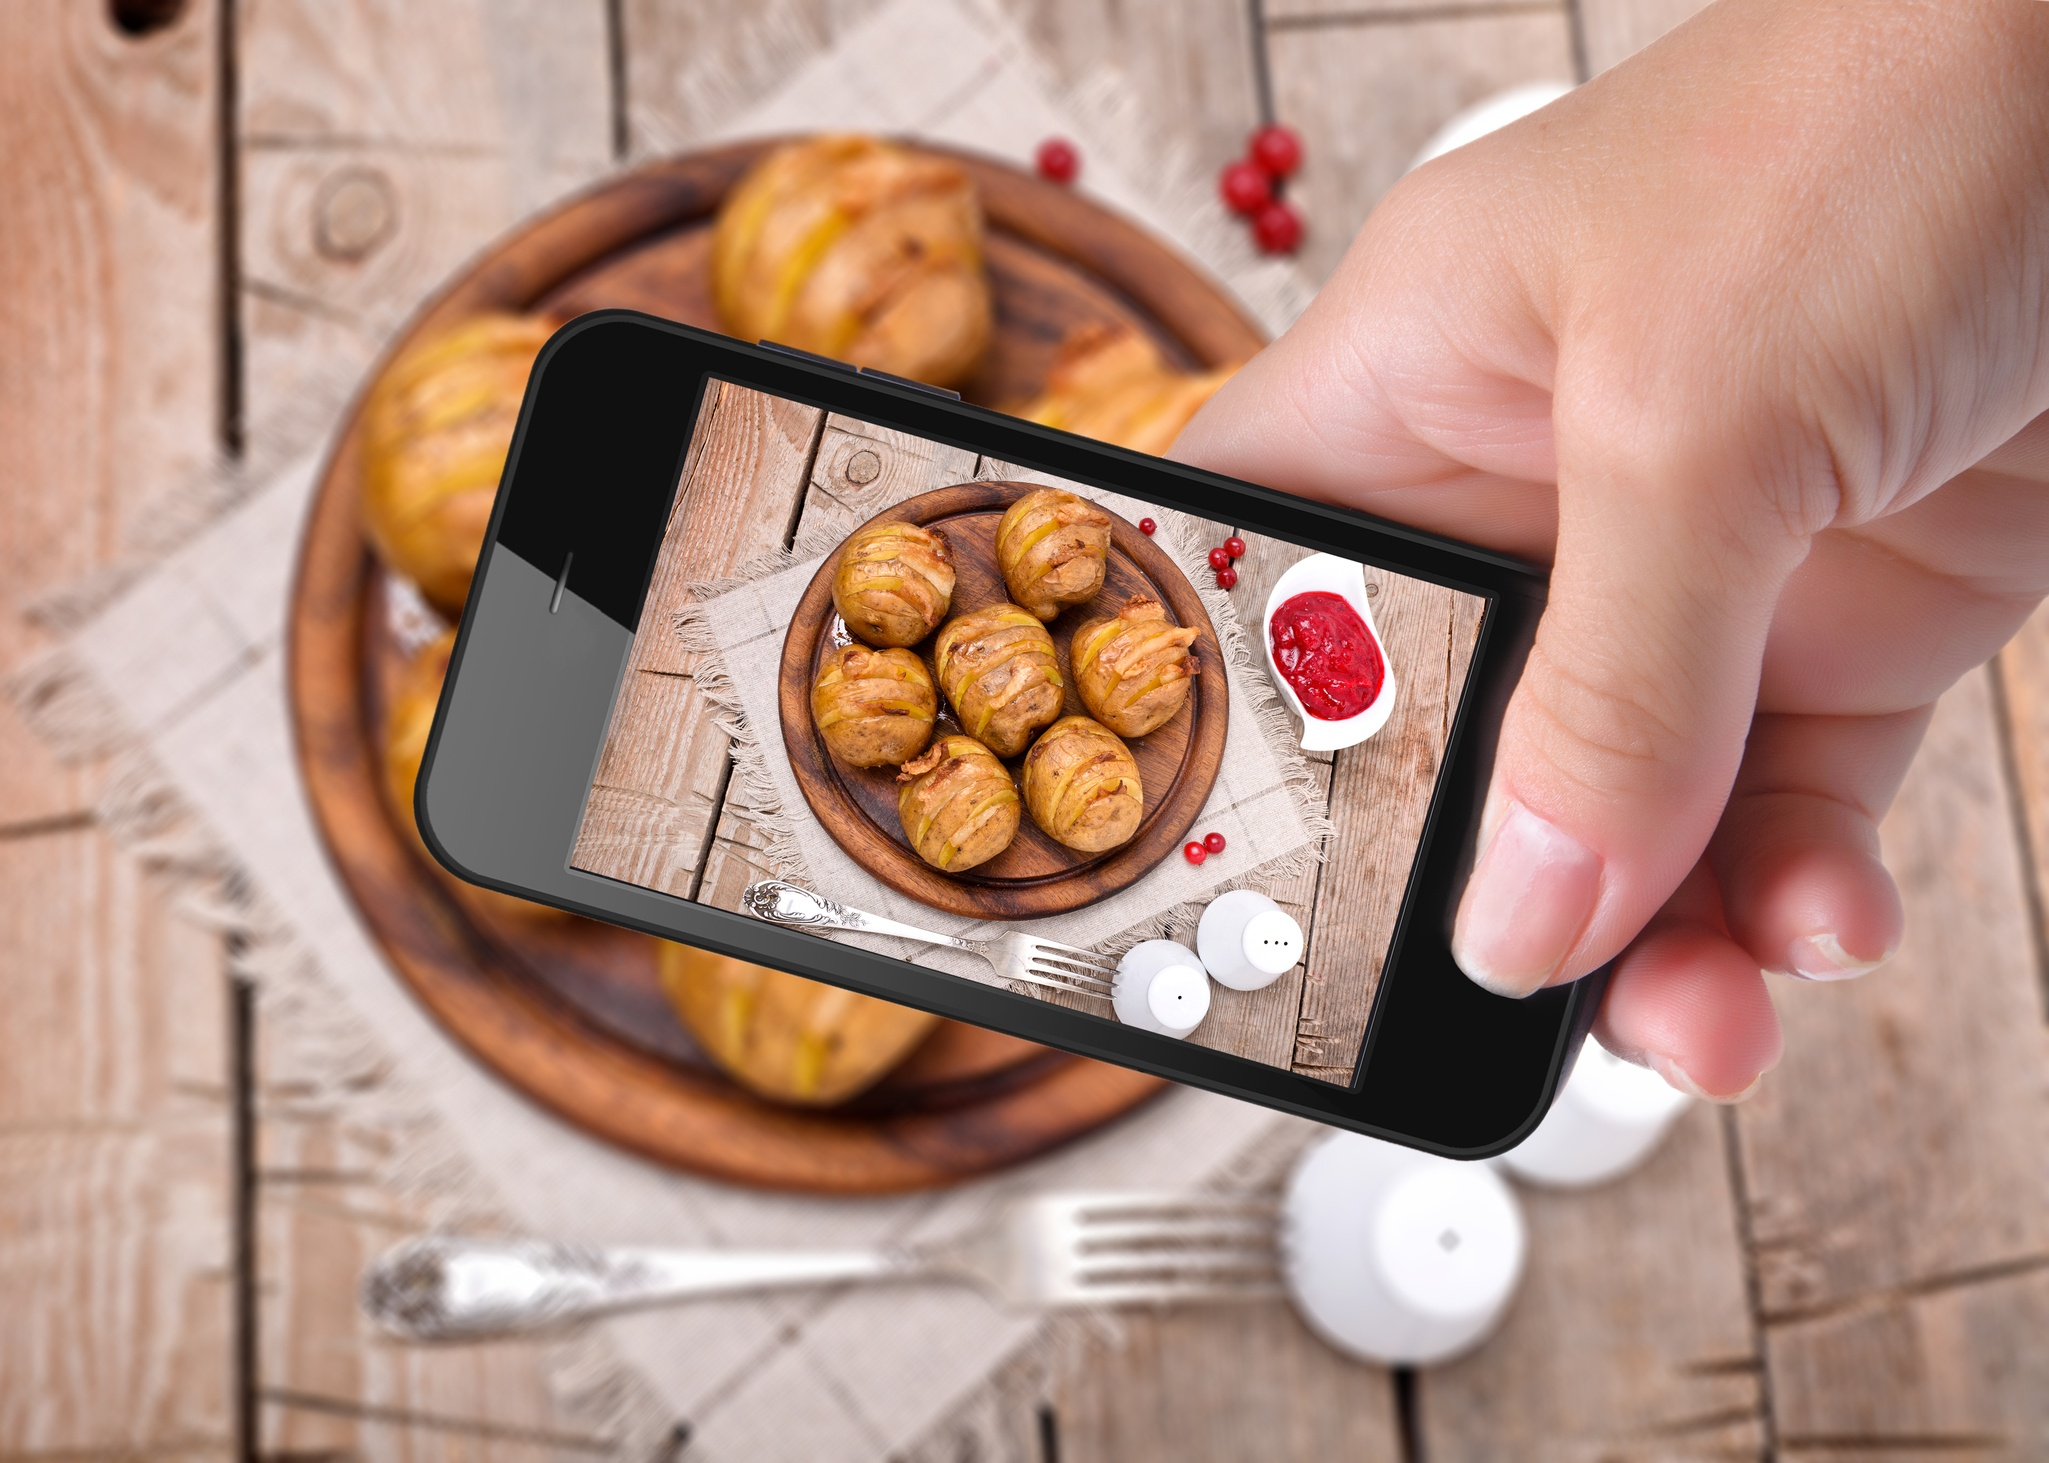 reach-more-diners-with-9-easy-instagram-restaurant-promotion-ideas